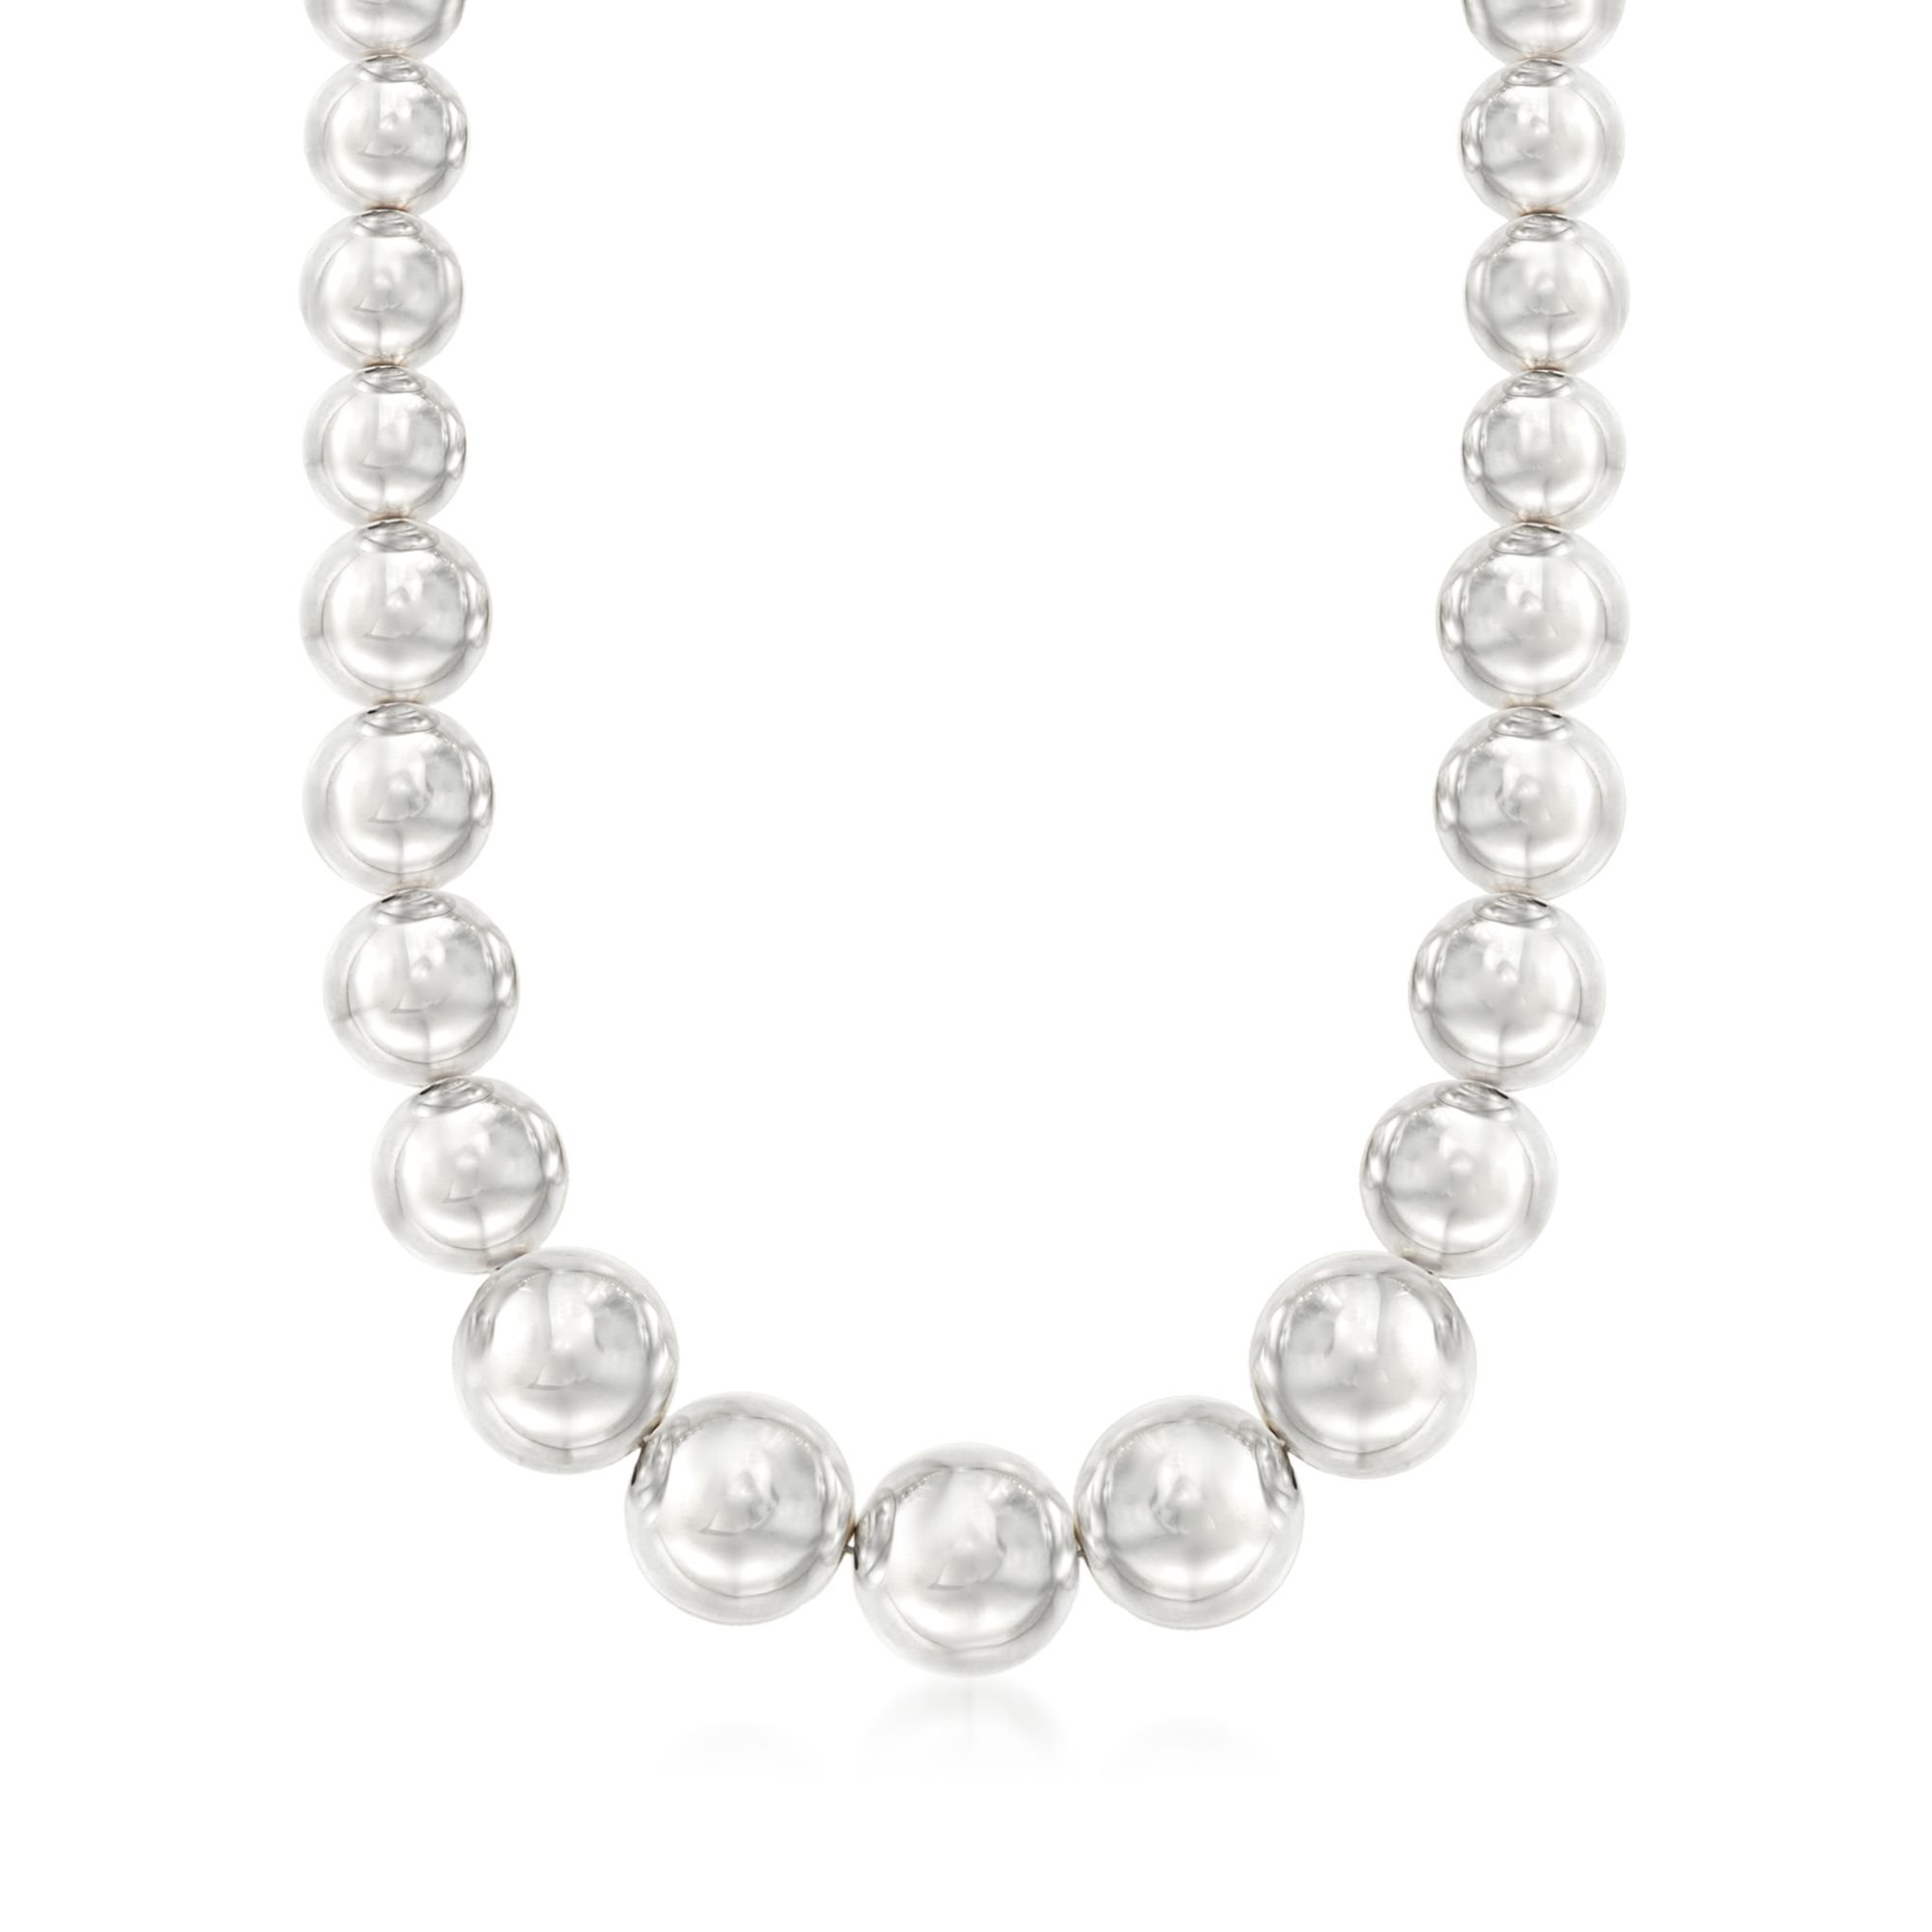 Ross-Simons Italian Andiamo Sterling Silver Graduated Bead Necklace